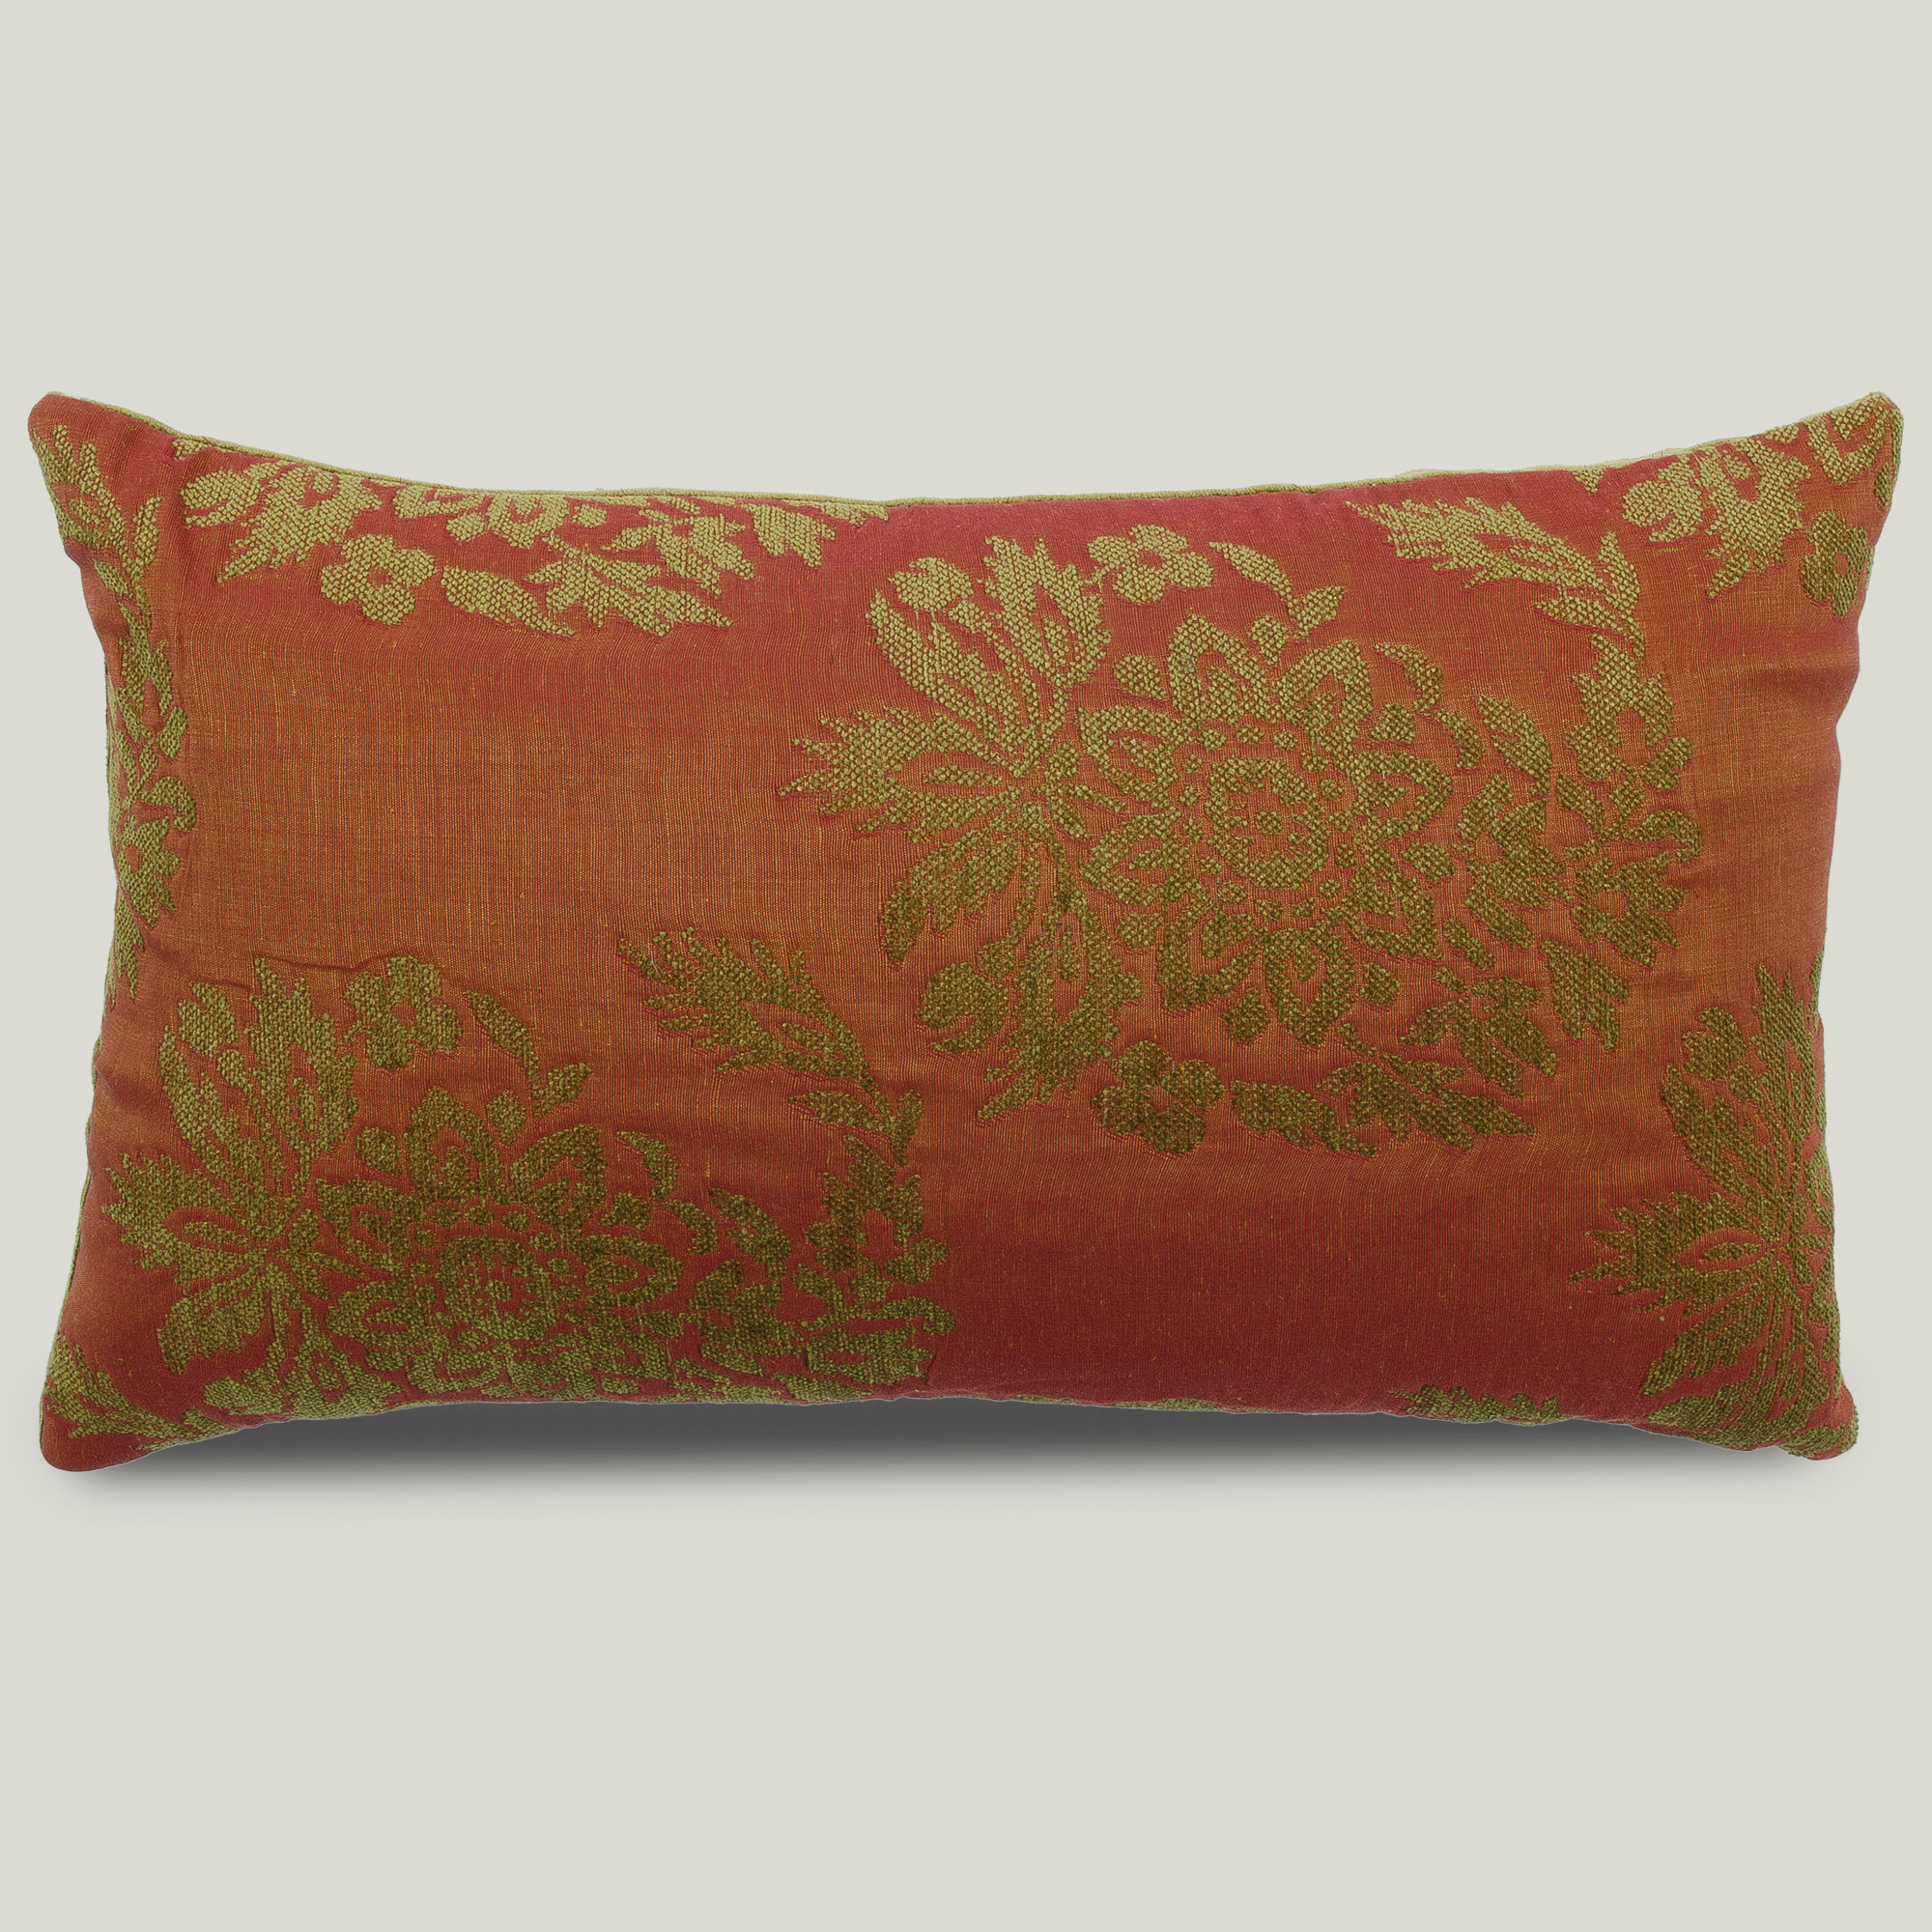 12 x 20 designer orange decorative throw pillow cover for Luxury decorative throw pillows